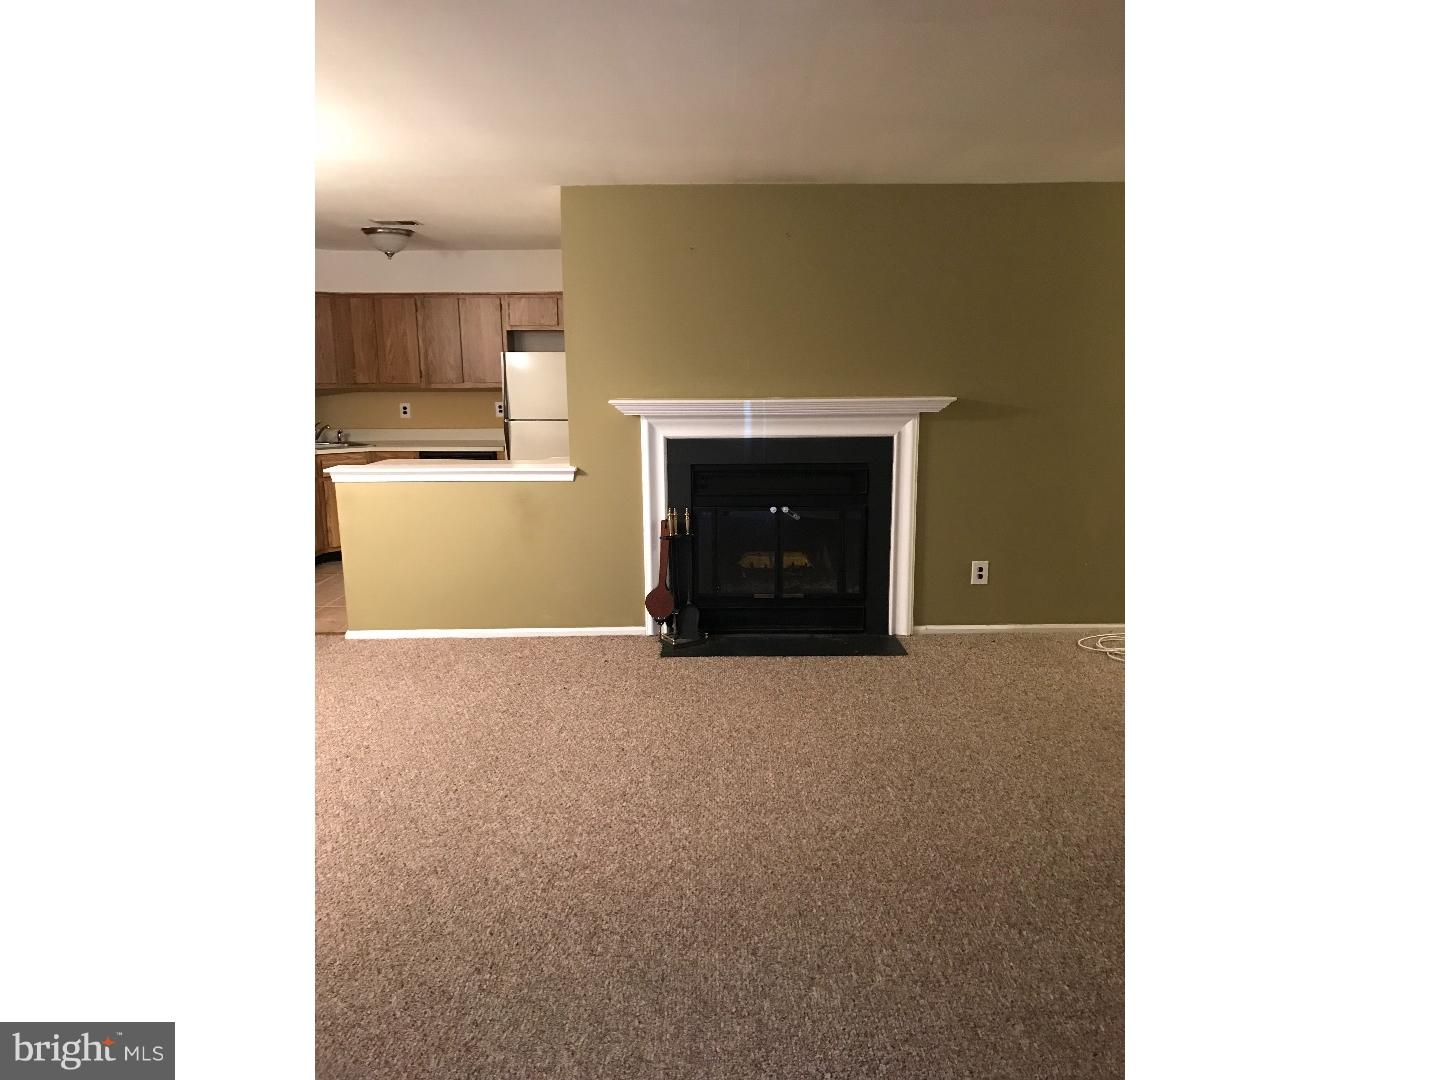 Admirable 154B Birchfield Court Mount Laurel Nj 08054 Sold Listing Mls 1004251314 Re Max Of Reading Home Interior And Landscaping Oversignezvosmurscom